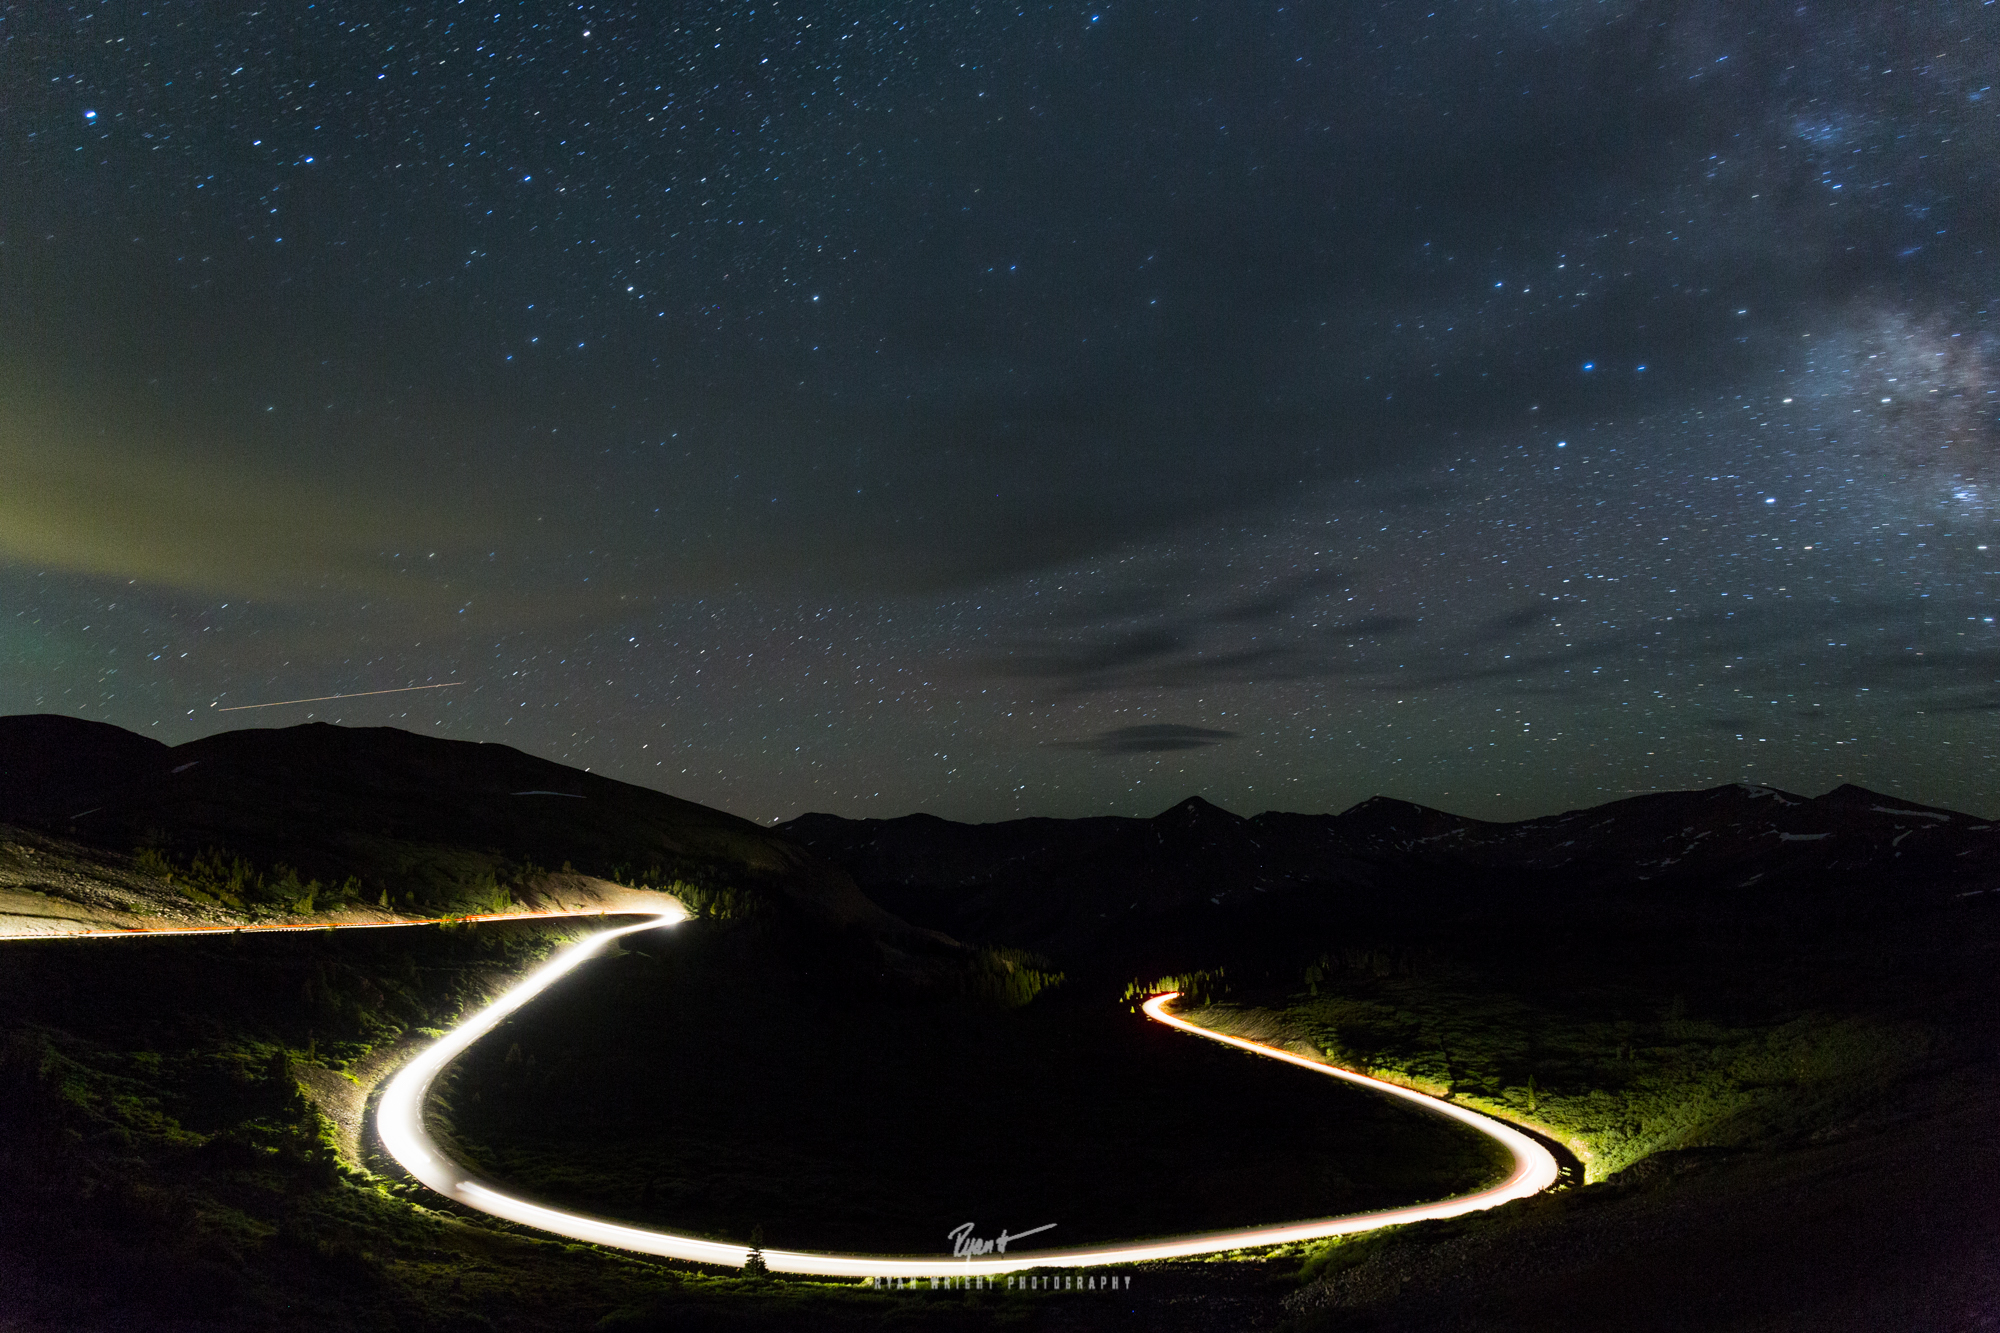 cottonwood-pass-night-milky-way.jpg